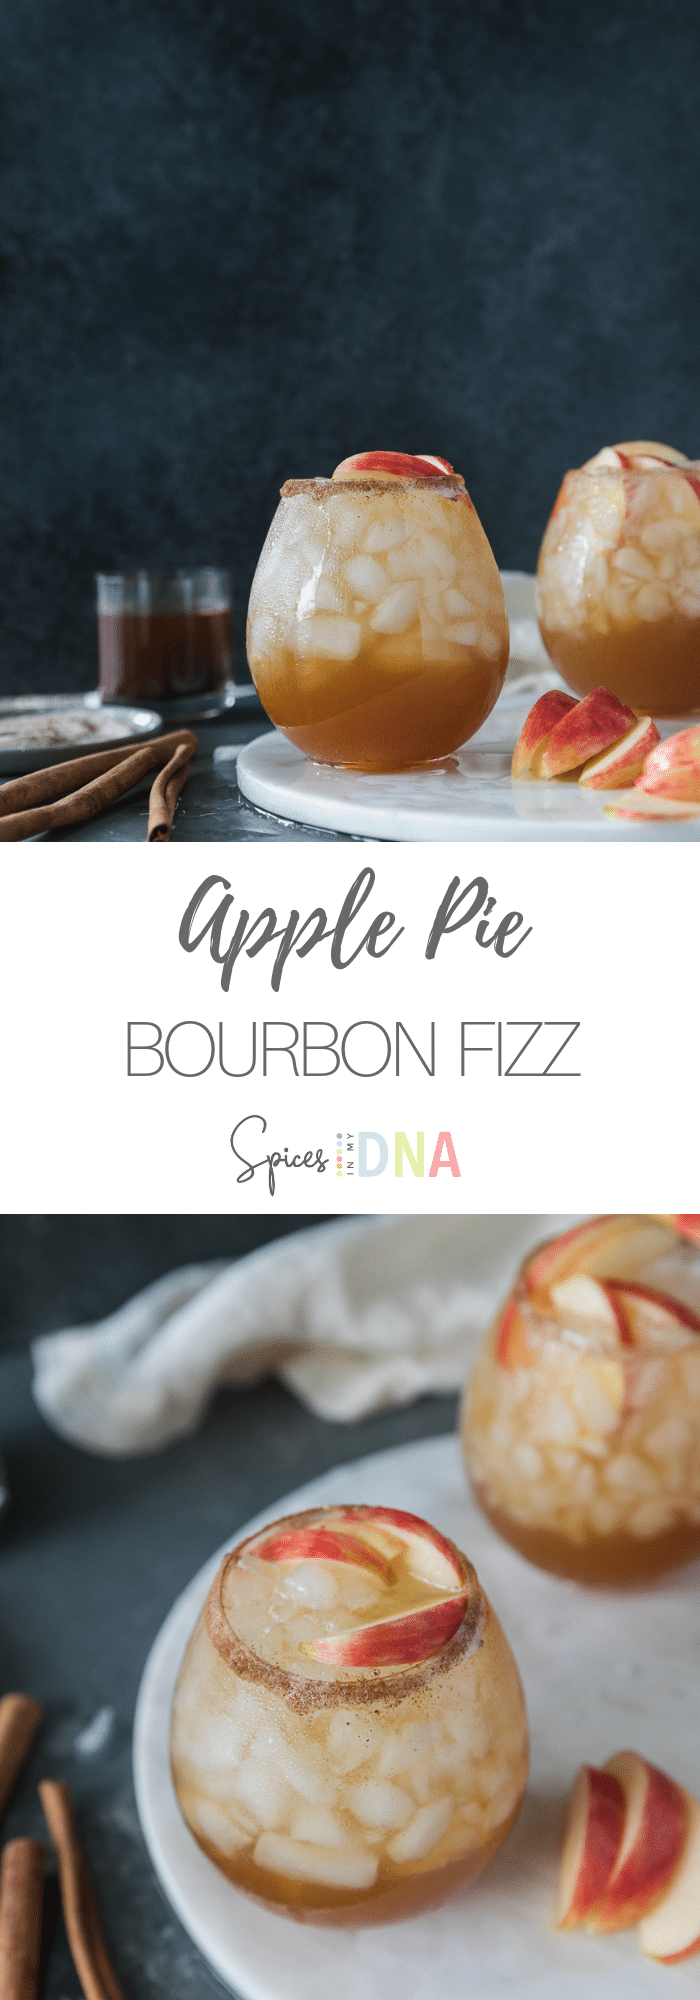 These Apple Pie Bourbon Fizzes are made with bourbon, homemade apple pie spiced simple syrup, apple cider, and a splash of soda water! They're the perfect amount of sweet and the most wonderful cocktail for fall! I love garnishing them with honeycrisp apple slices and cinnamon sticks! #applepie #bourbon #cocktail #fallrecipes